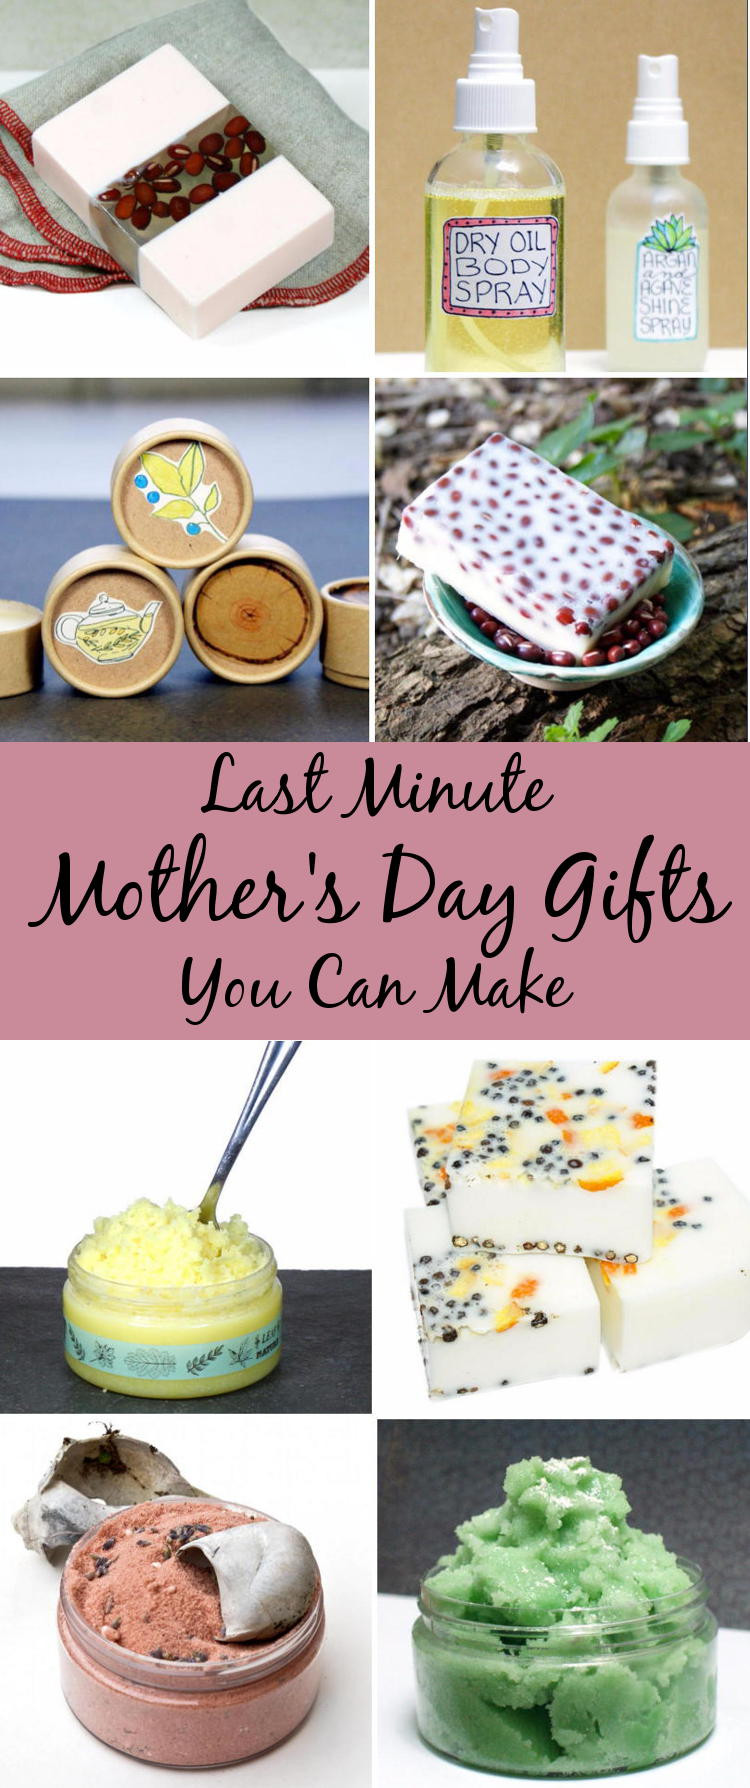 Best ideas about DIY Mother'S Day Gifts . Save or Pin Last Minute Mother s Day Gift Ideas Soap Deli News Now.